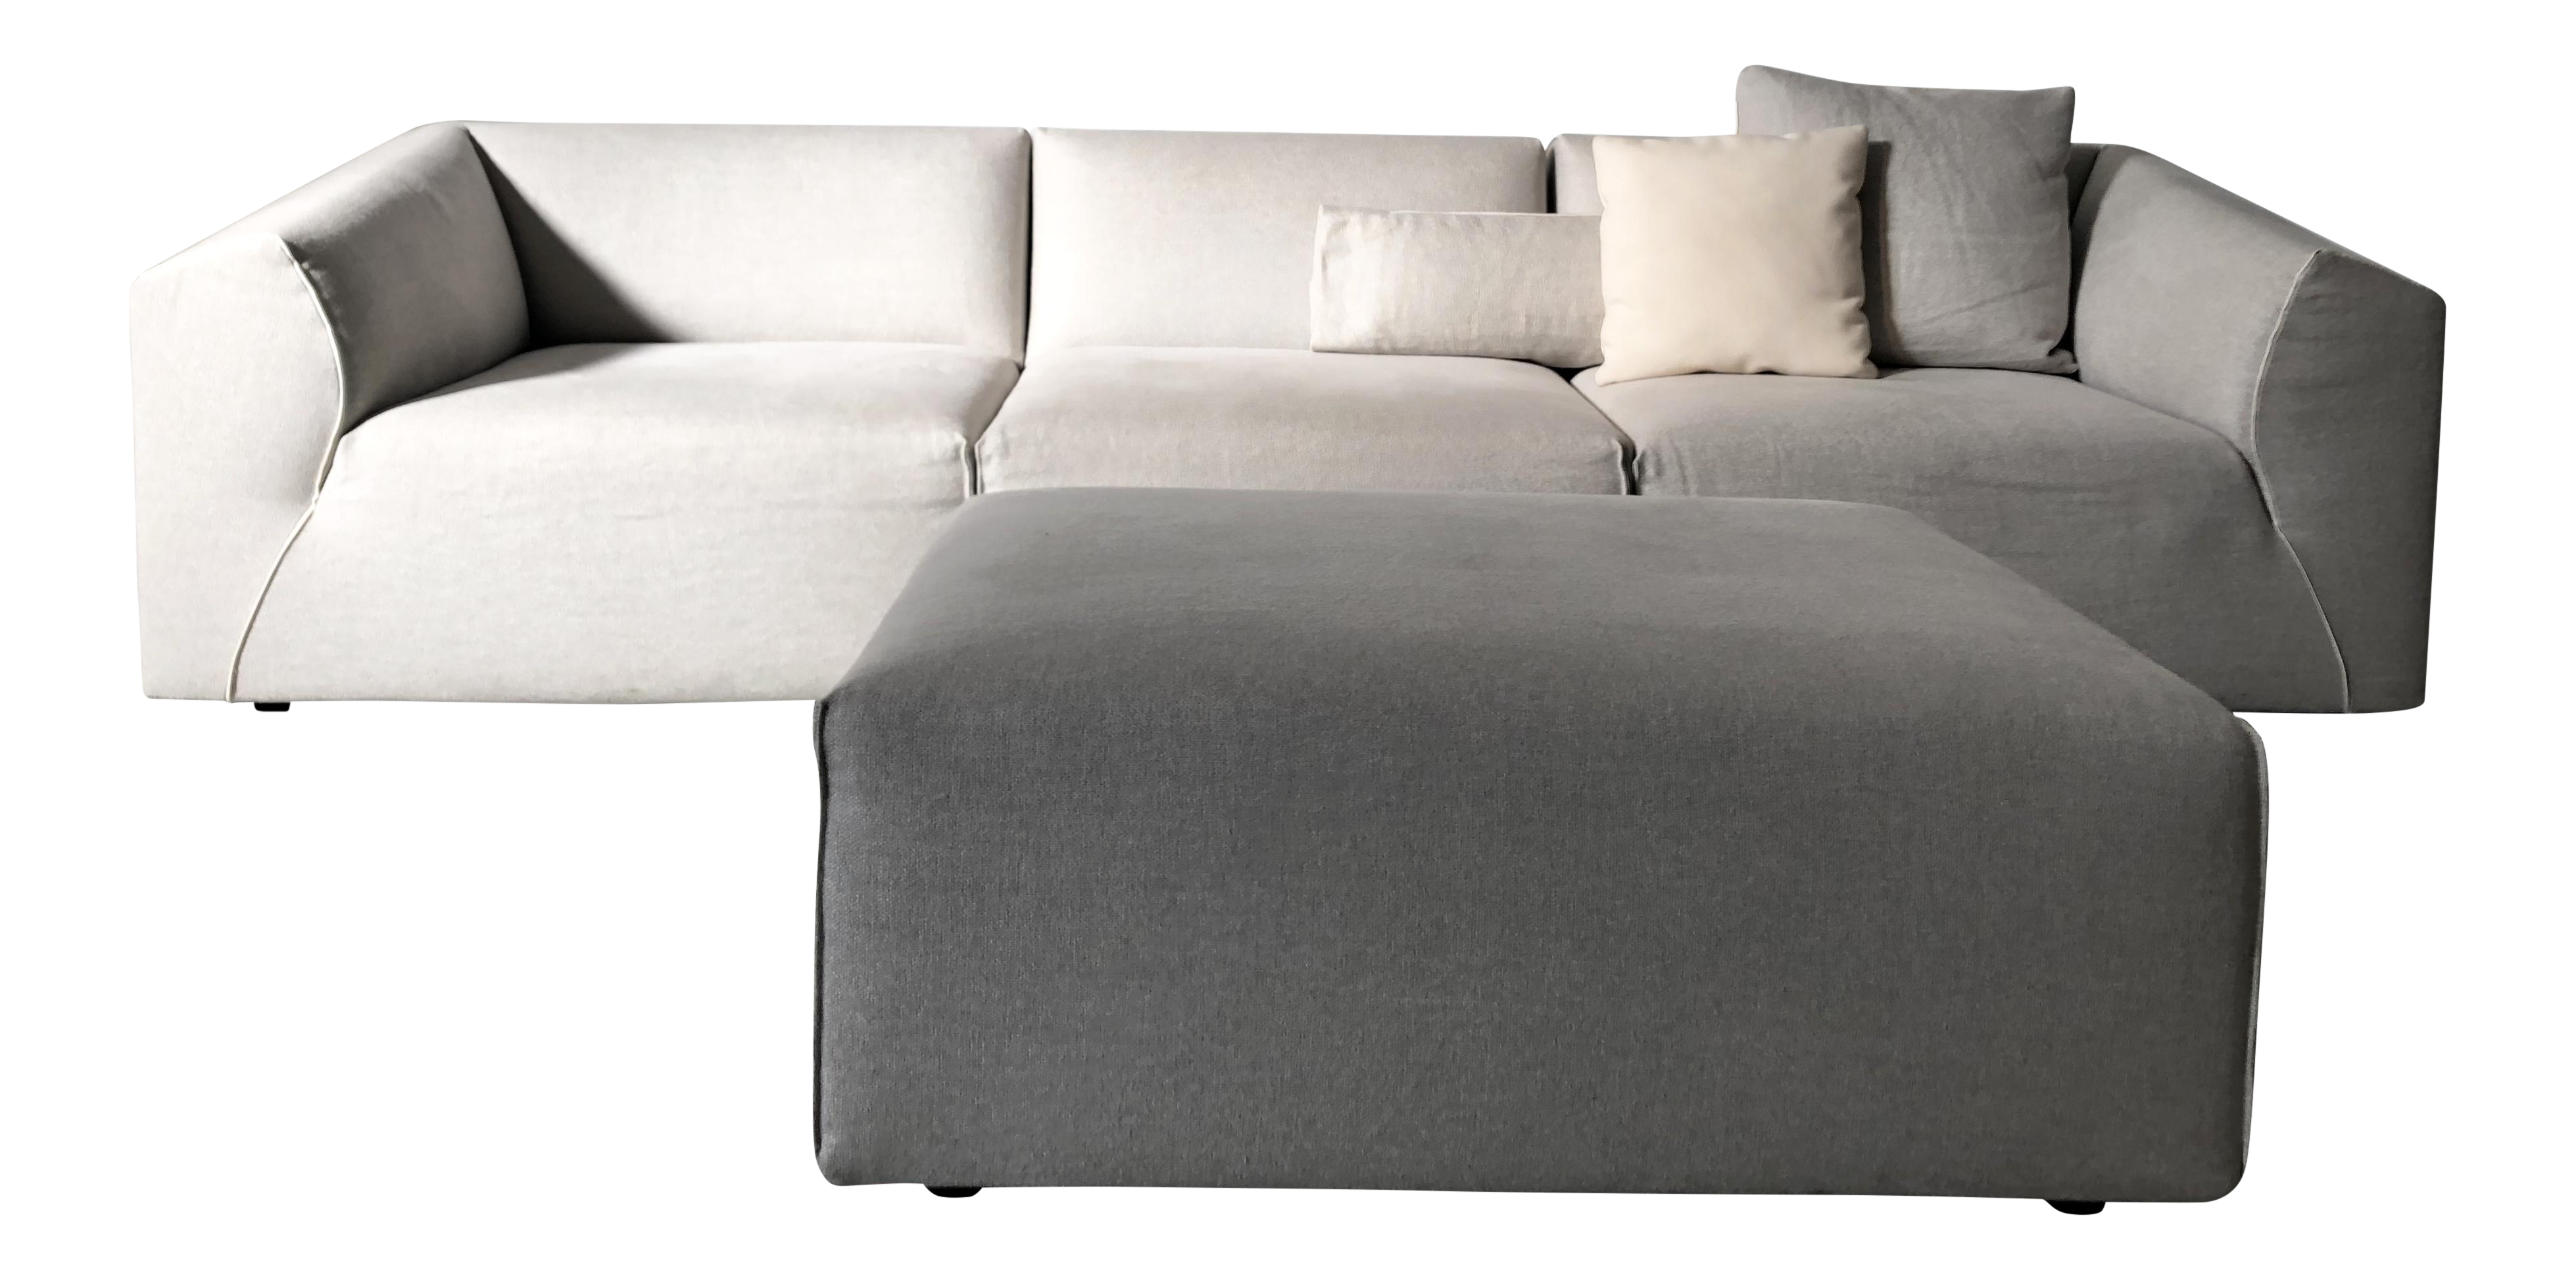 Modern Modular Sofa and Ottoman Light Grey and White Piping by Mdf ...